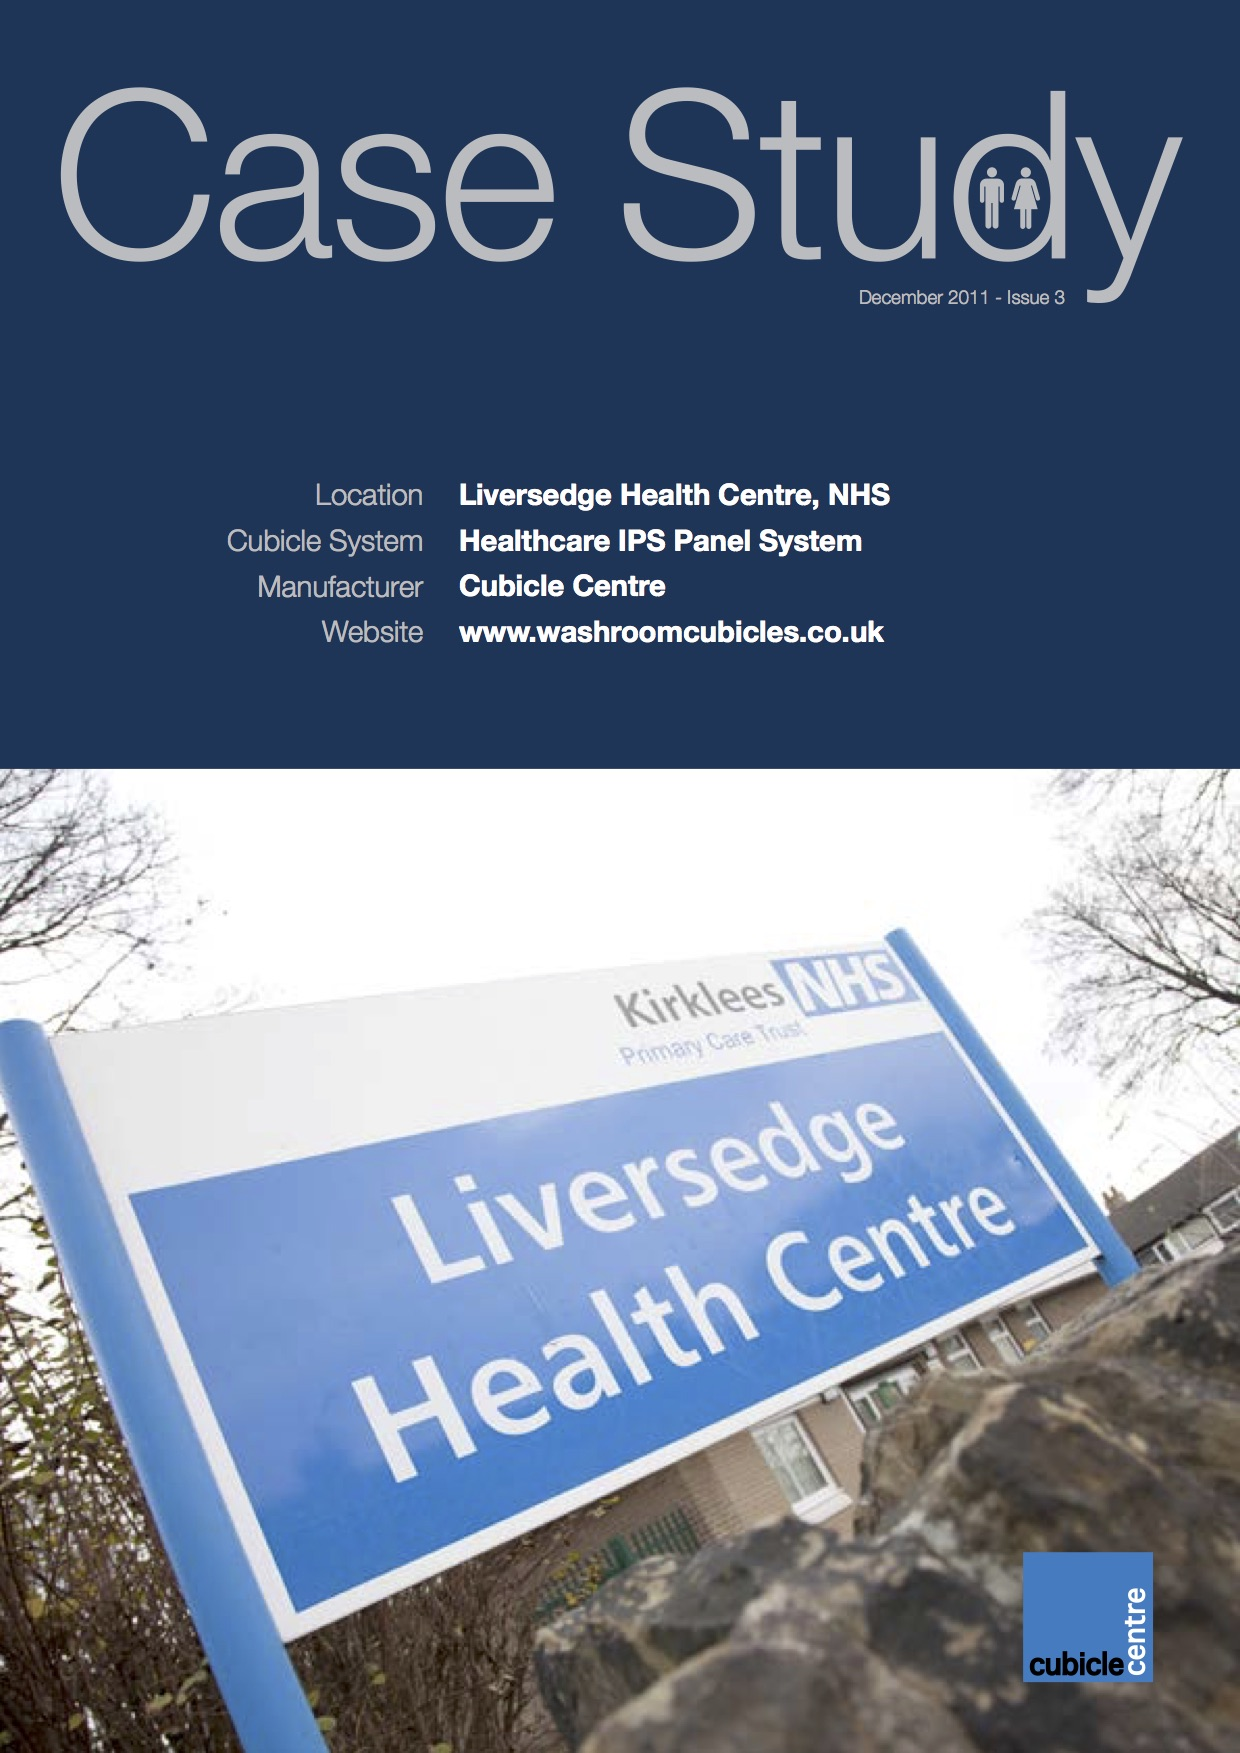 Liversedge Health Centre